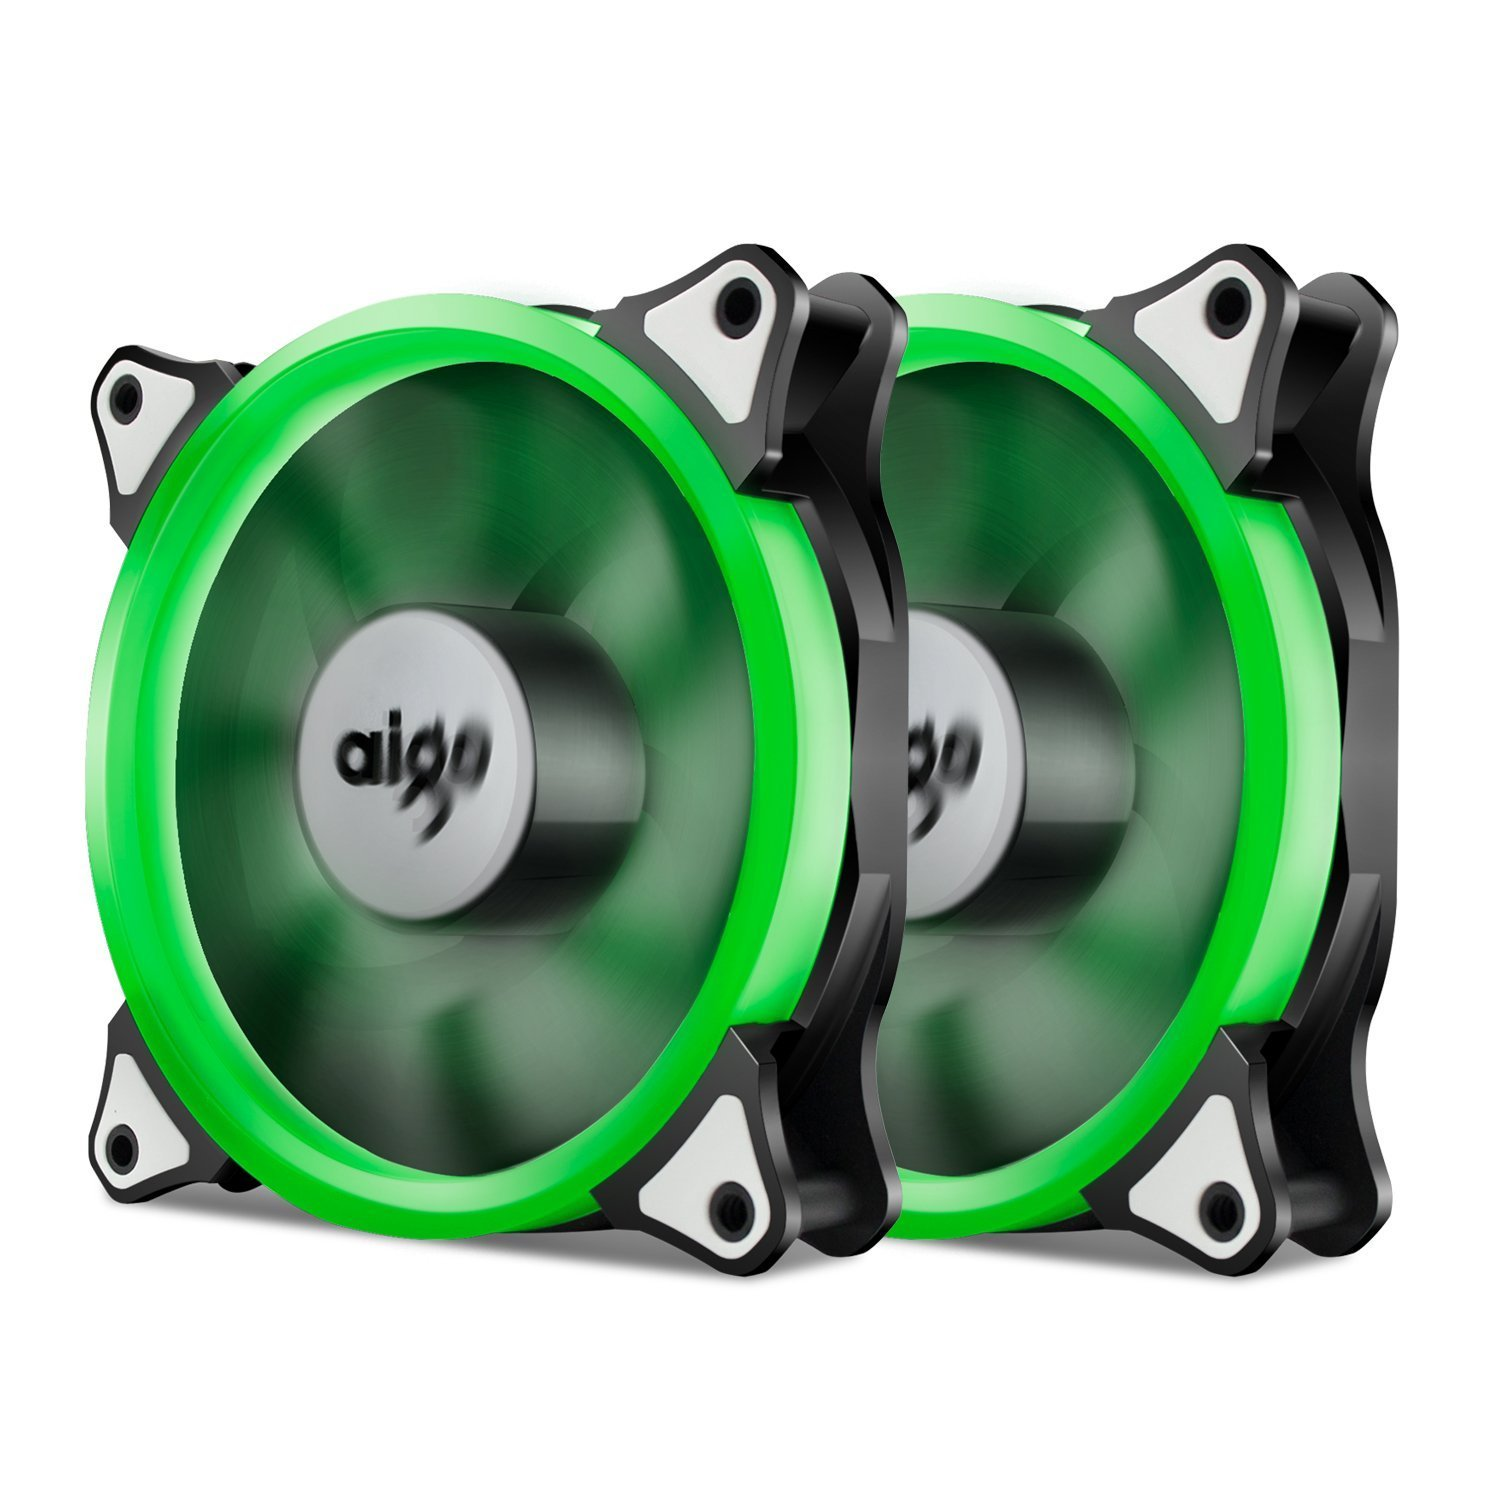 Aigo, Halo LED 120mm 12cm PC CPU Computer Case Cooling Neon Quite Clear Fan Mod 4 Pin/3 Pin (2 Pack Green)